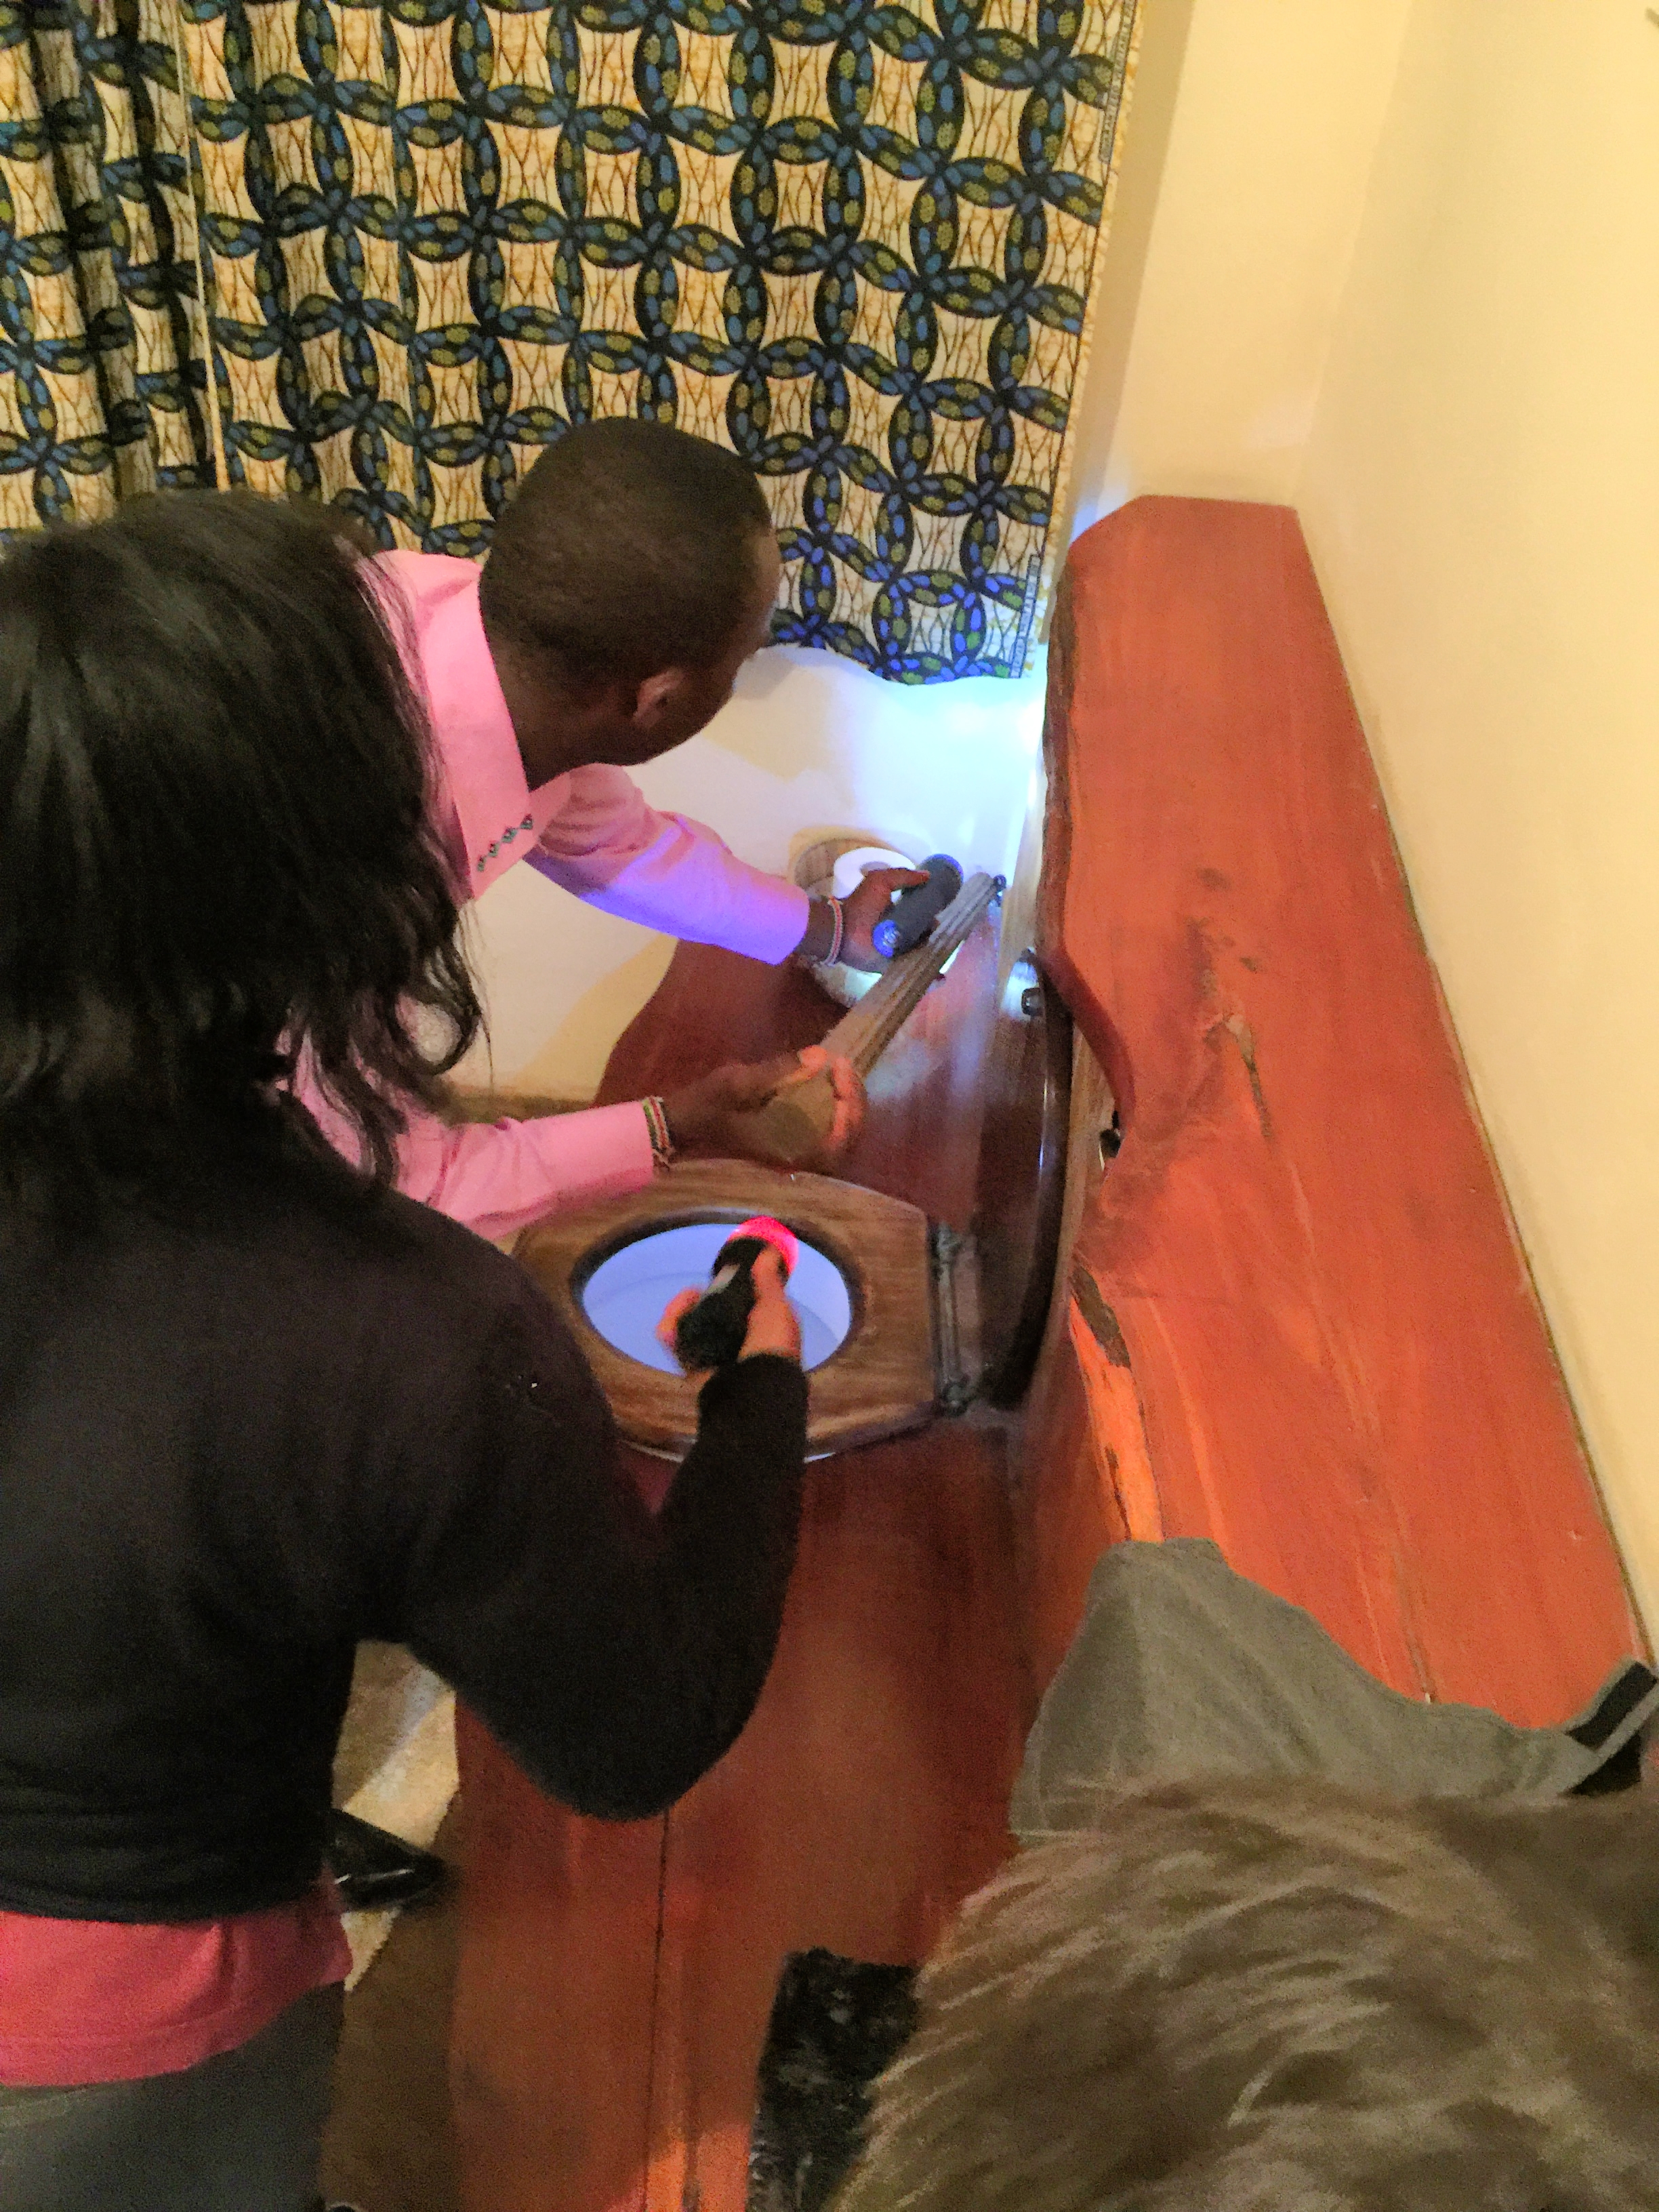 The Lewa Lodge staff pushing the snake back down the hole it came from.